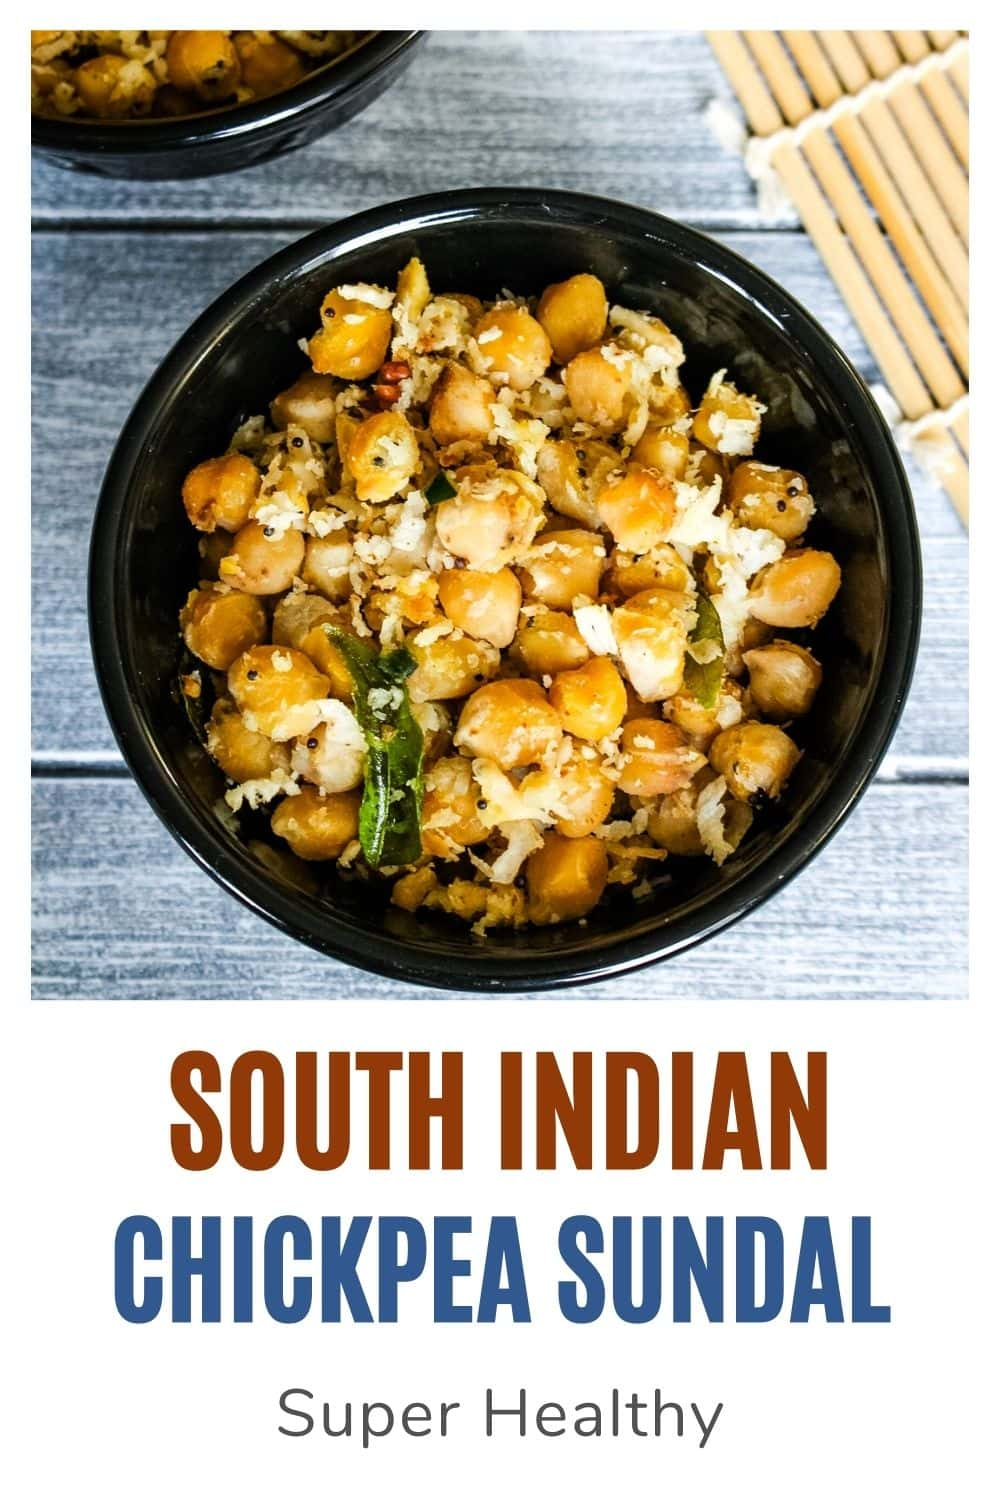 Chickpea sundal in a bowl with text on the image for pinterest